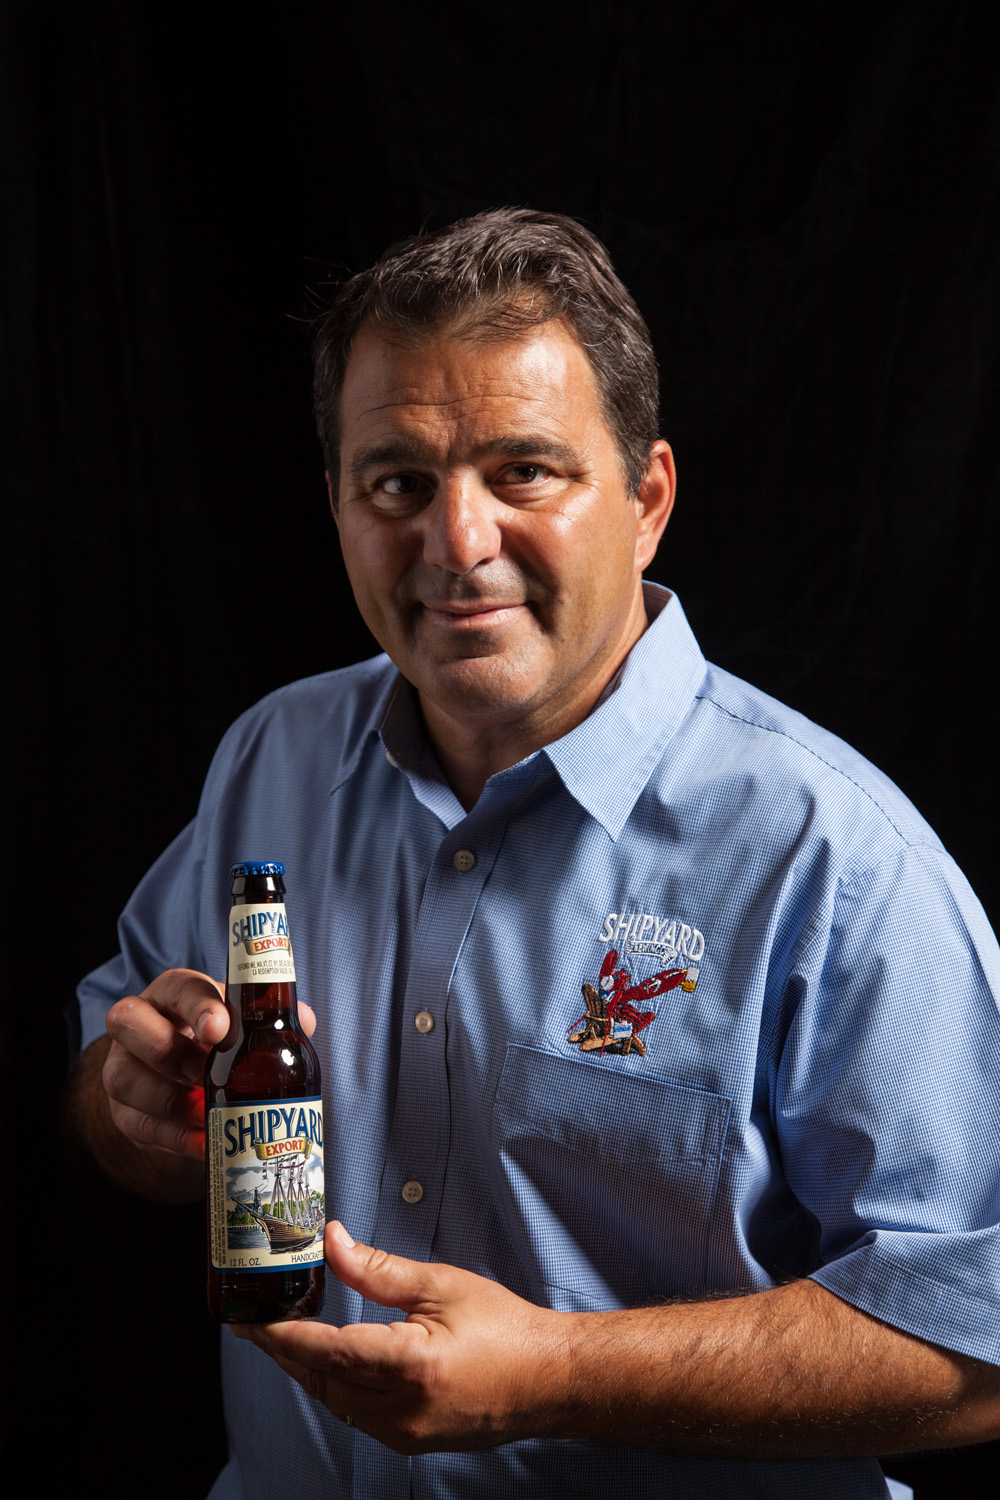 Fred Forsley, Owner of Shipyard Brewing Co. Portland, ME Established in 1994